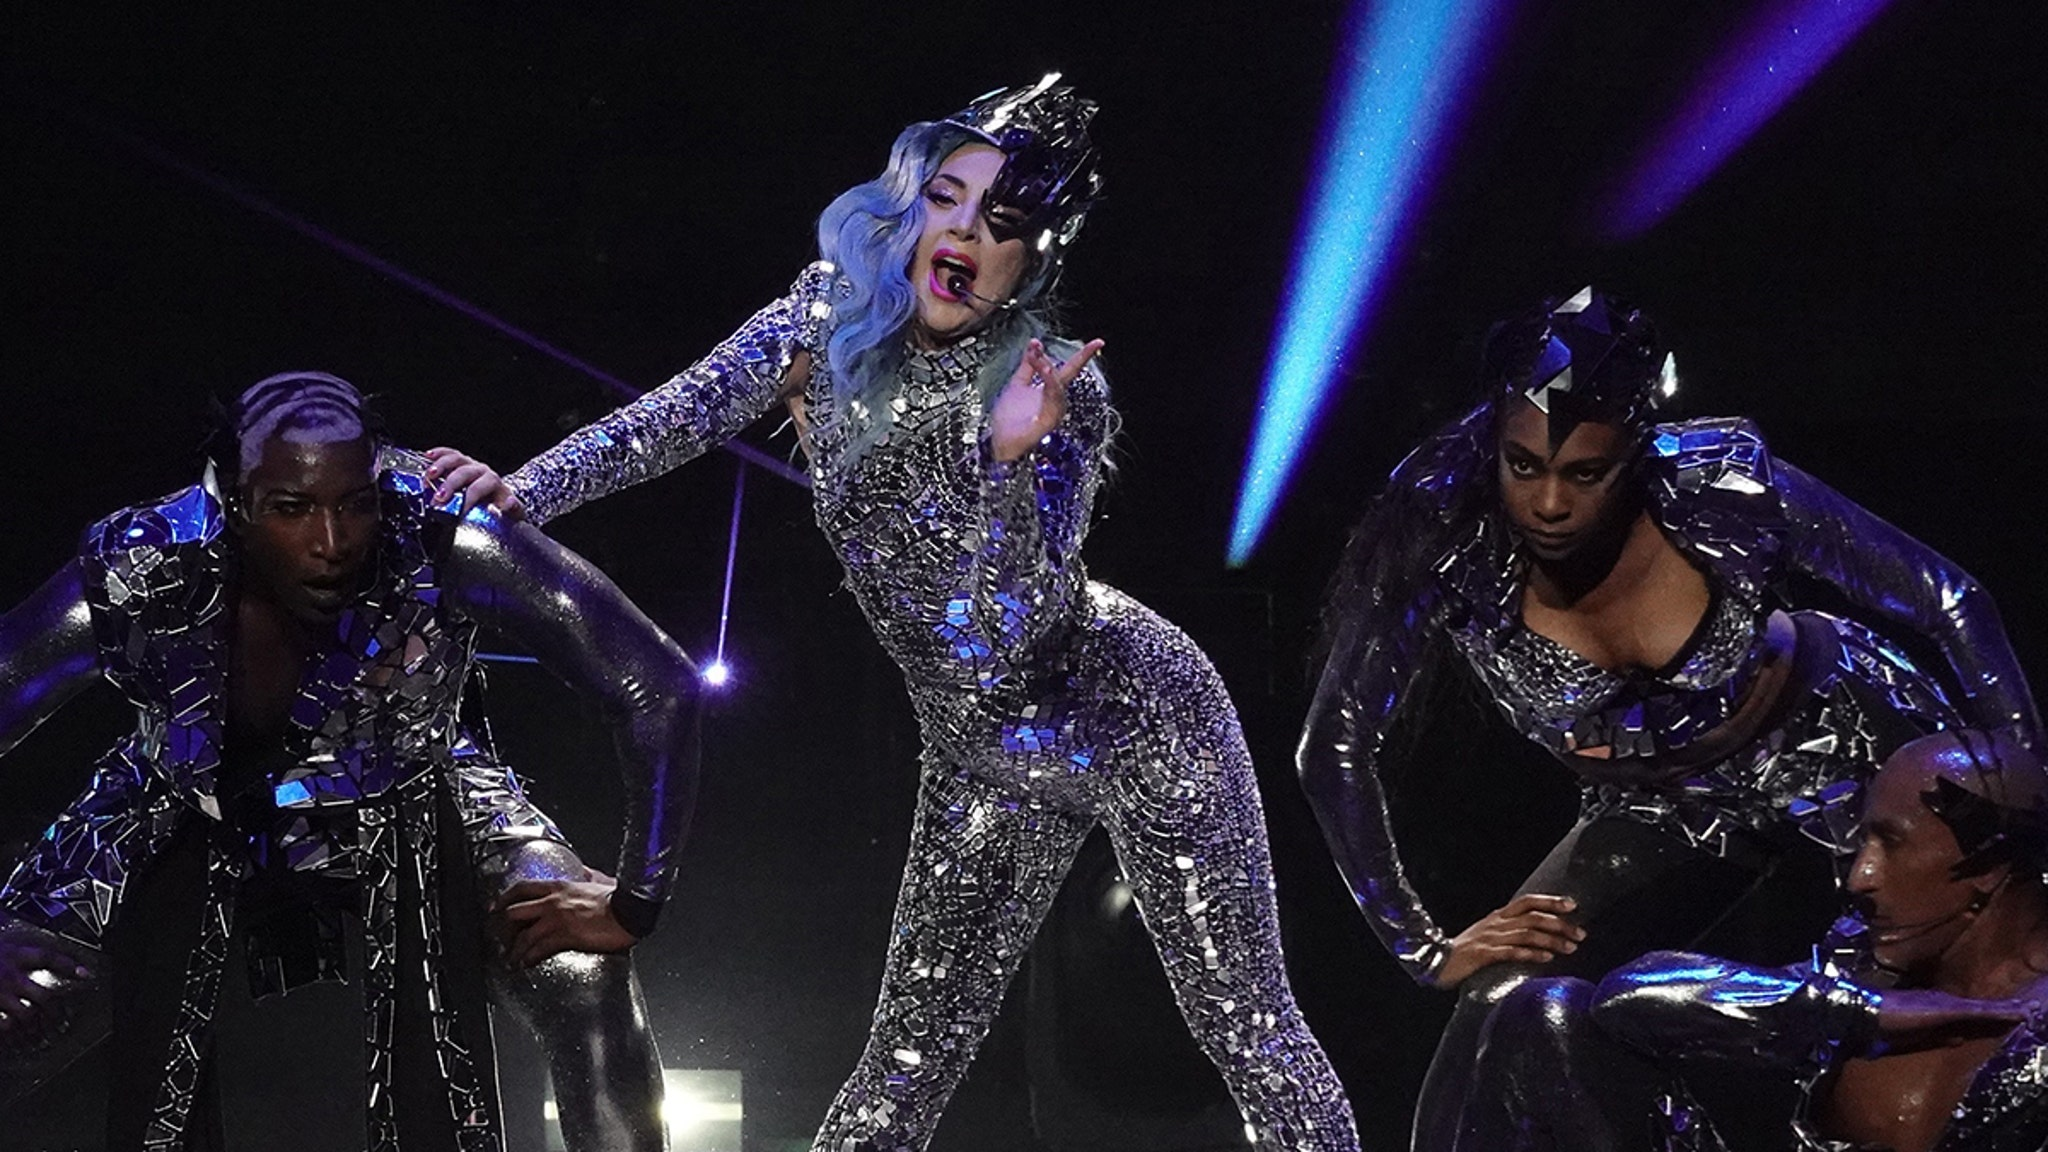 Lady Gaga You want A Super Bowl-Worthy Performance ... Then I'll Show You One!!!